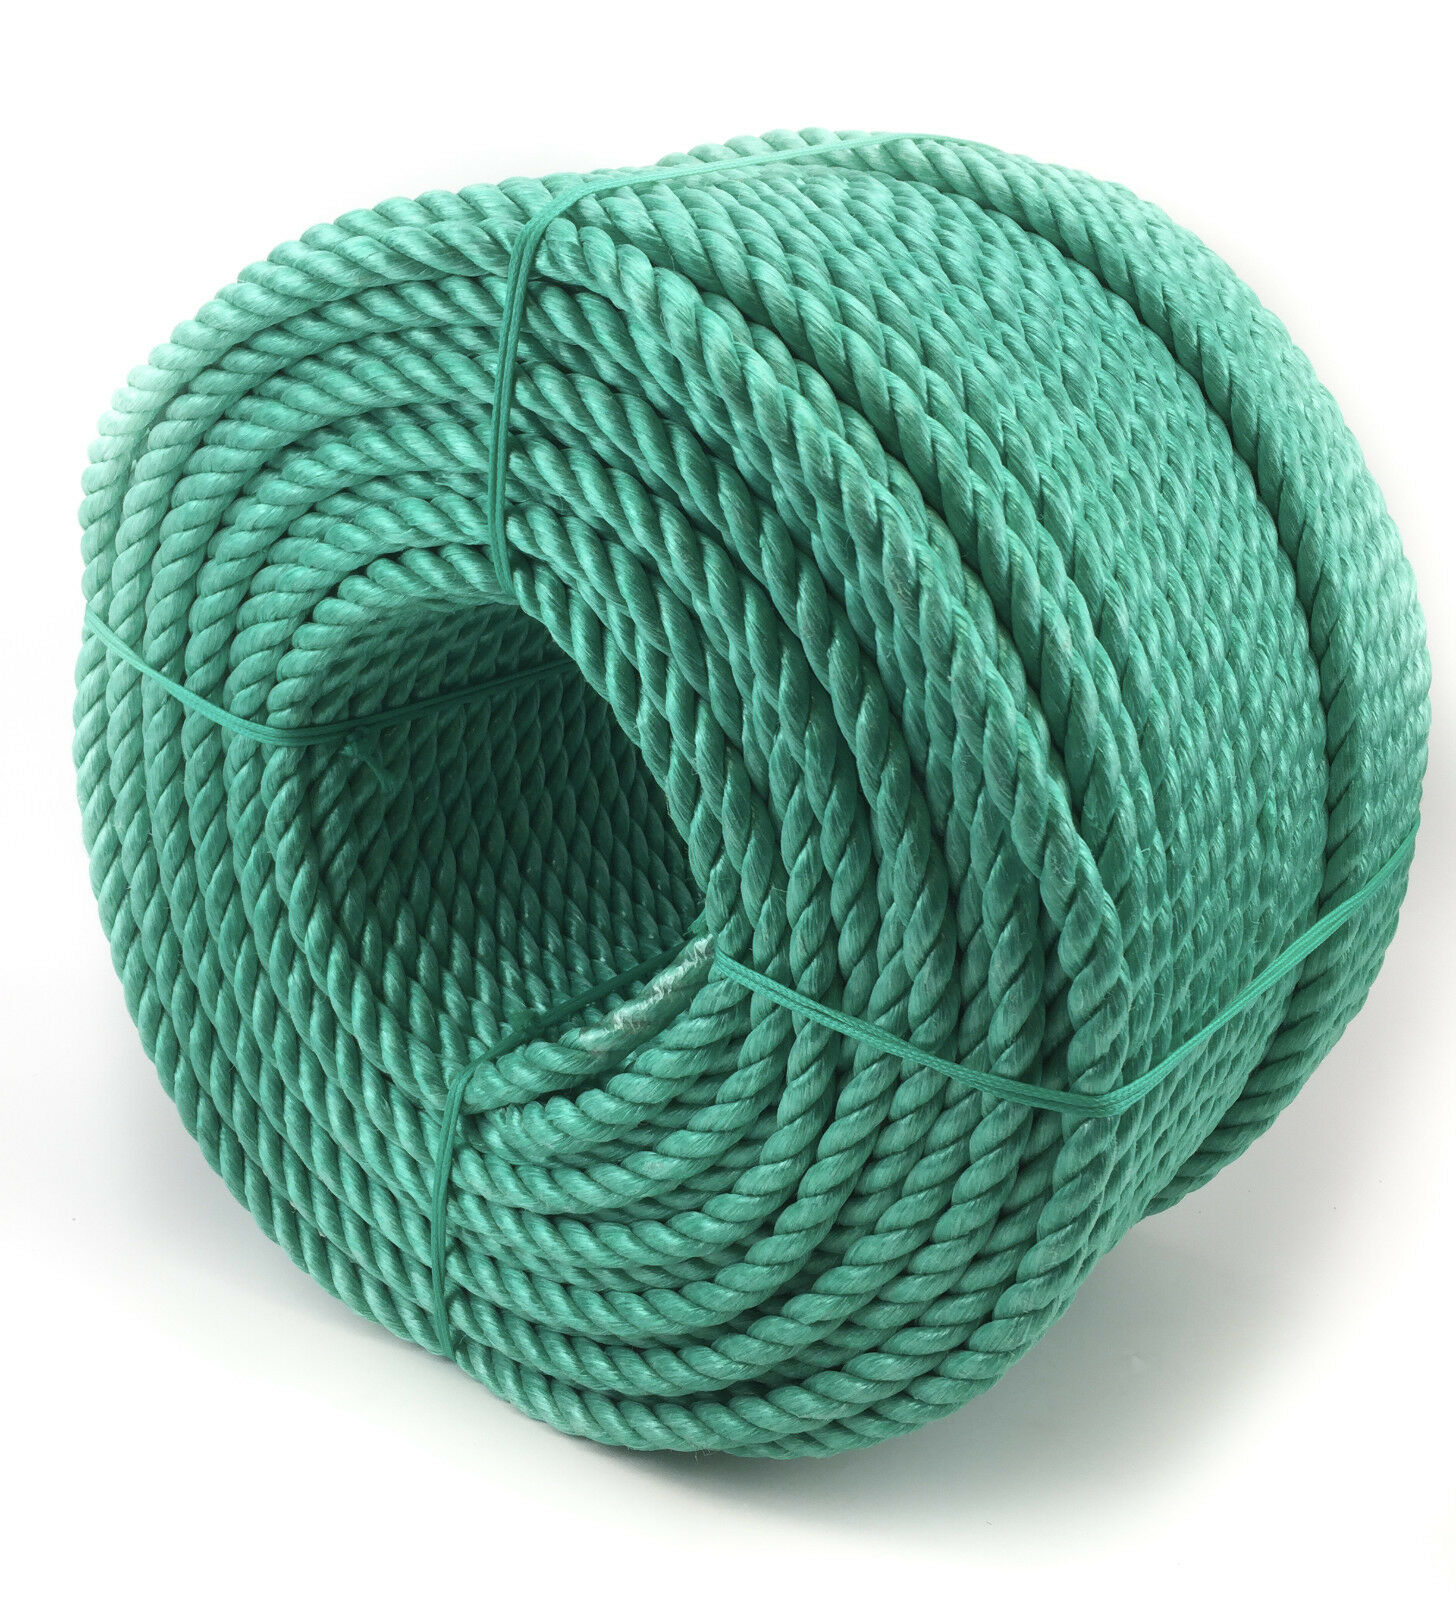 18mm Green Polypropylene Rope x 45 Metres, Poly Rope Coils, Cheap Nylon Rope